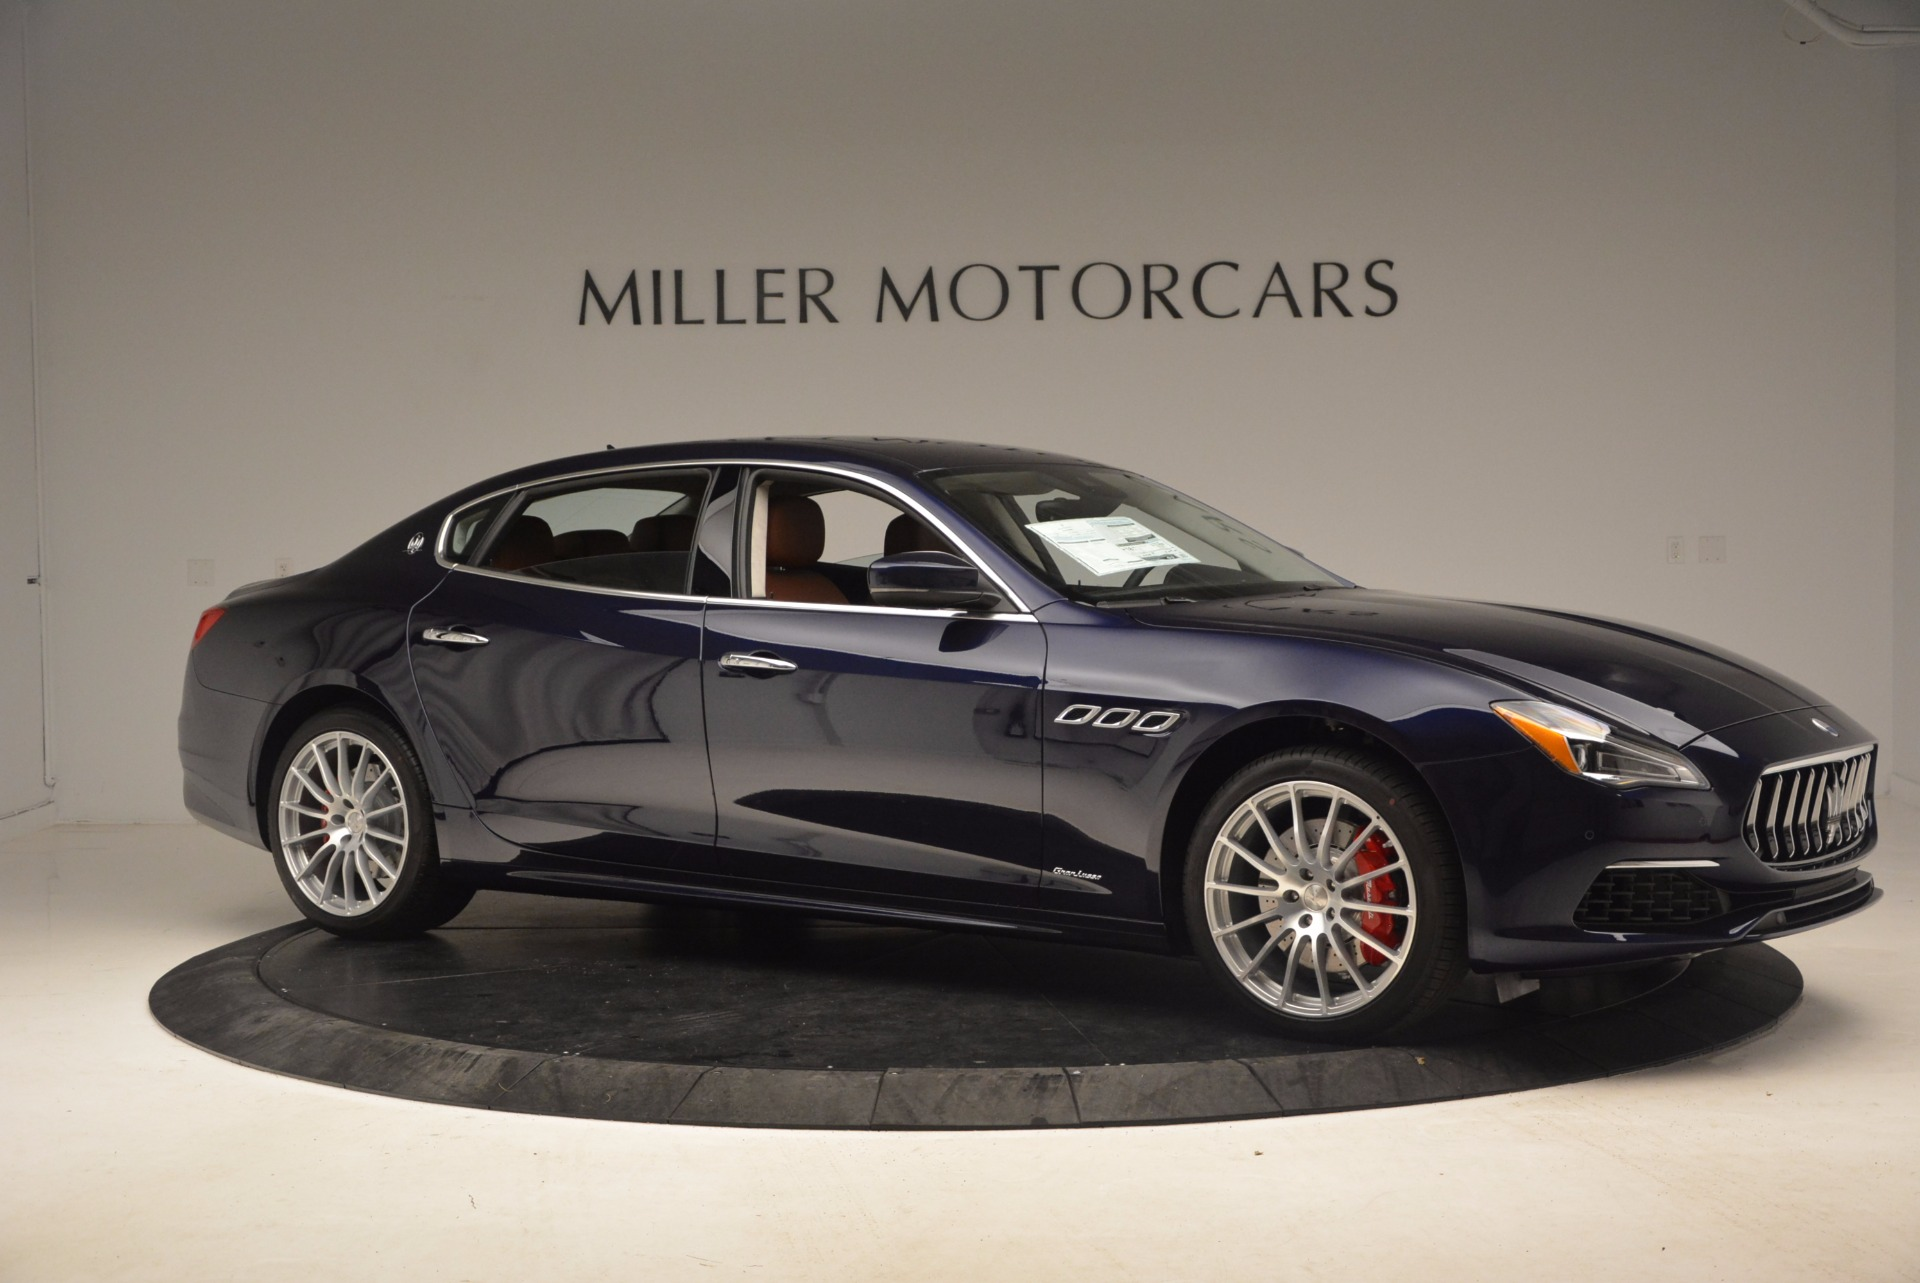 New 2018 Maserati Quattroporte S Q4 GranLusso For Sale In Greenwich, CT 1700_p10